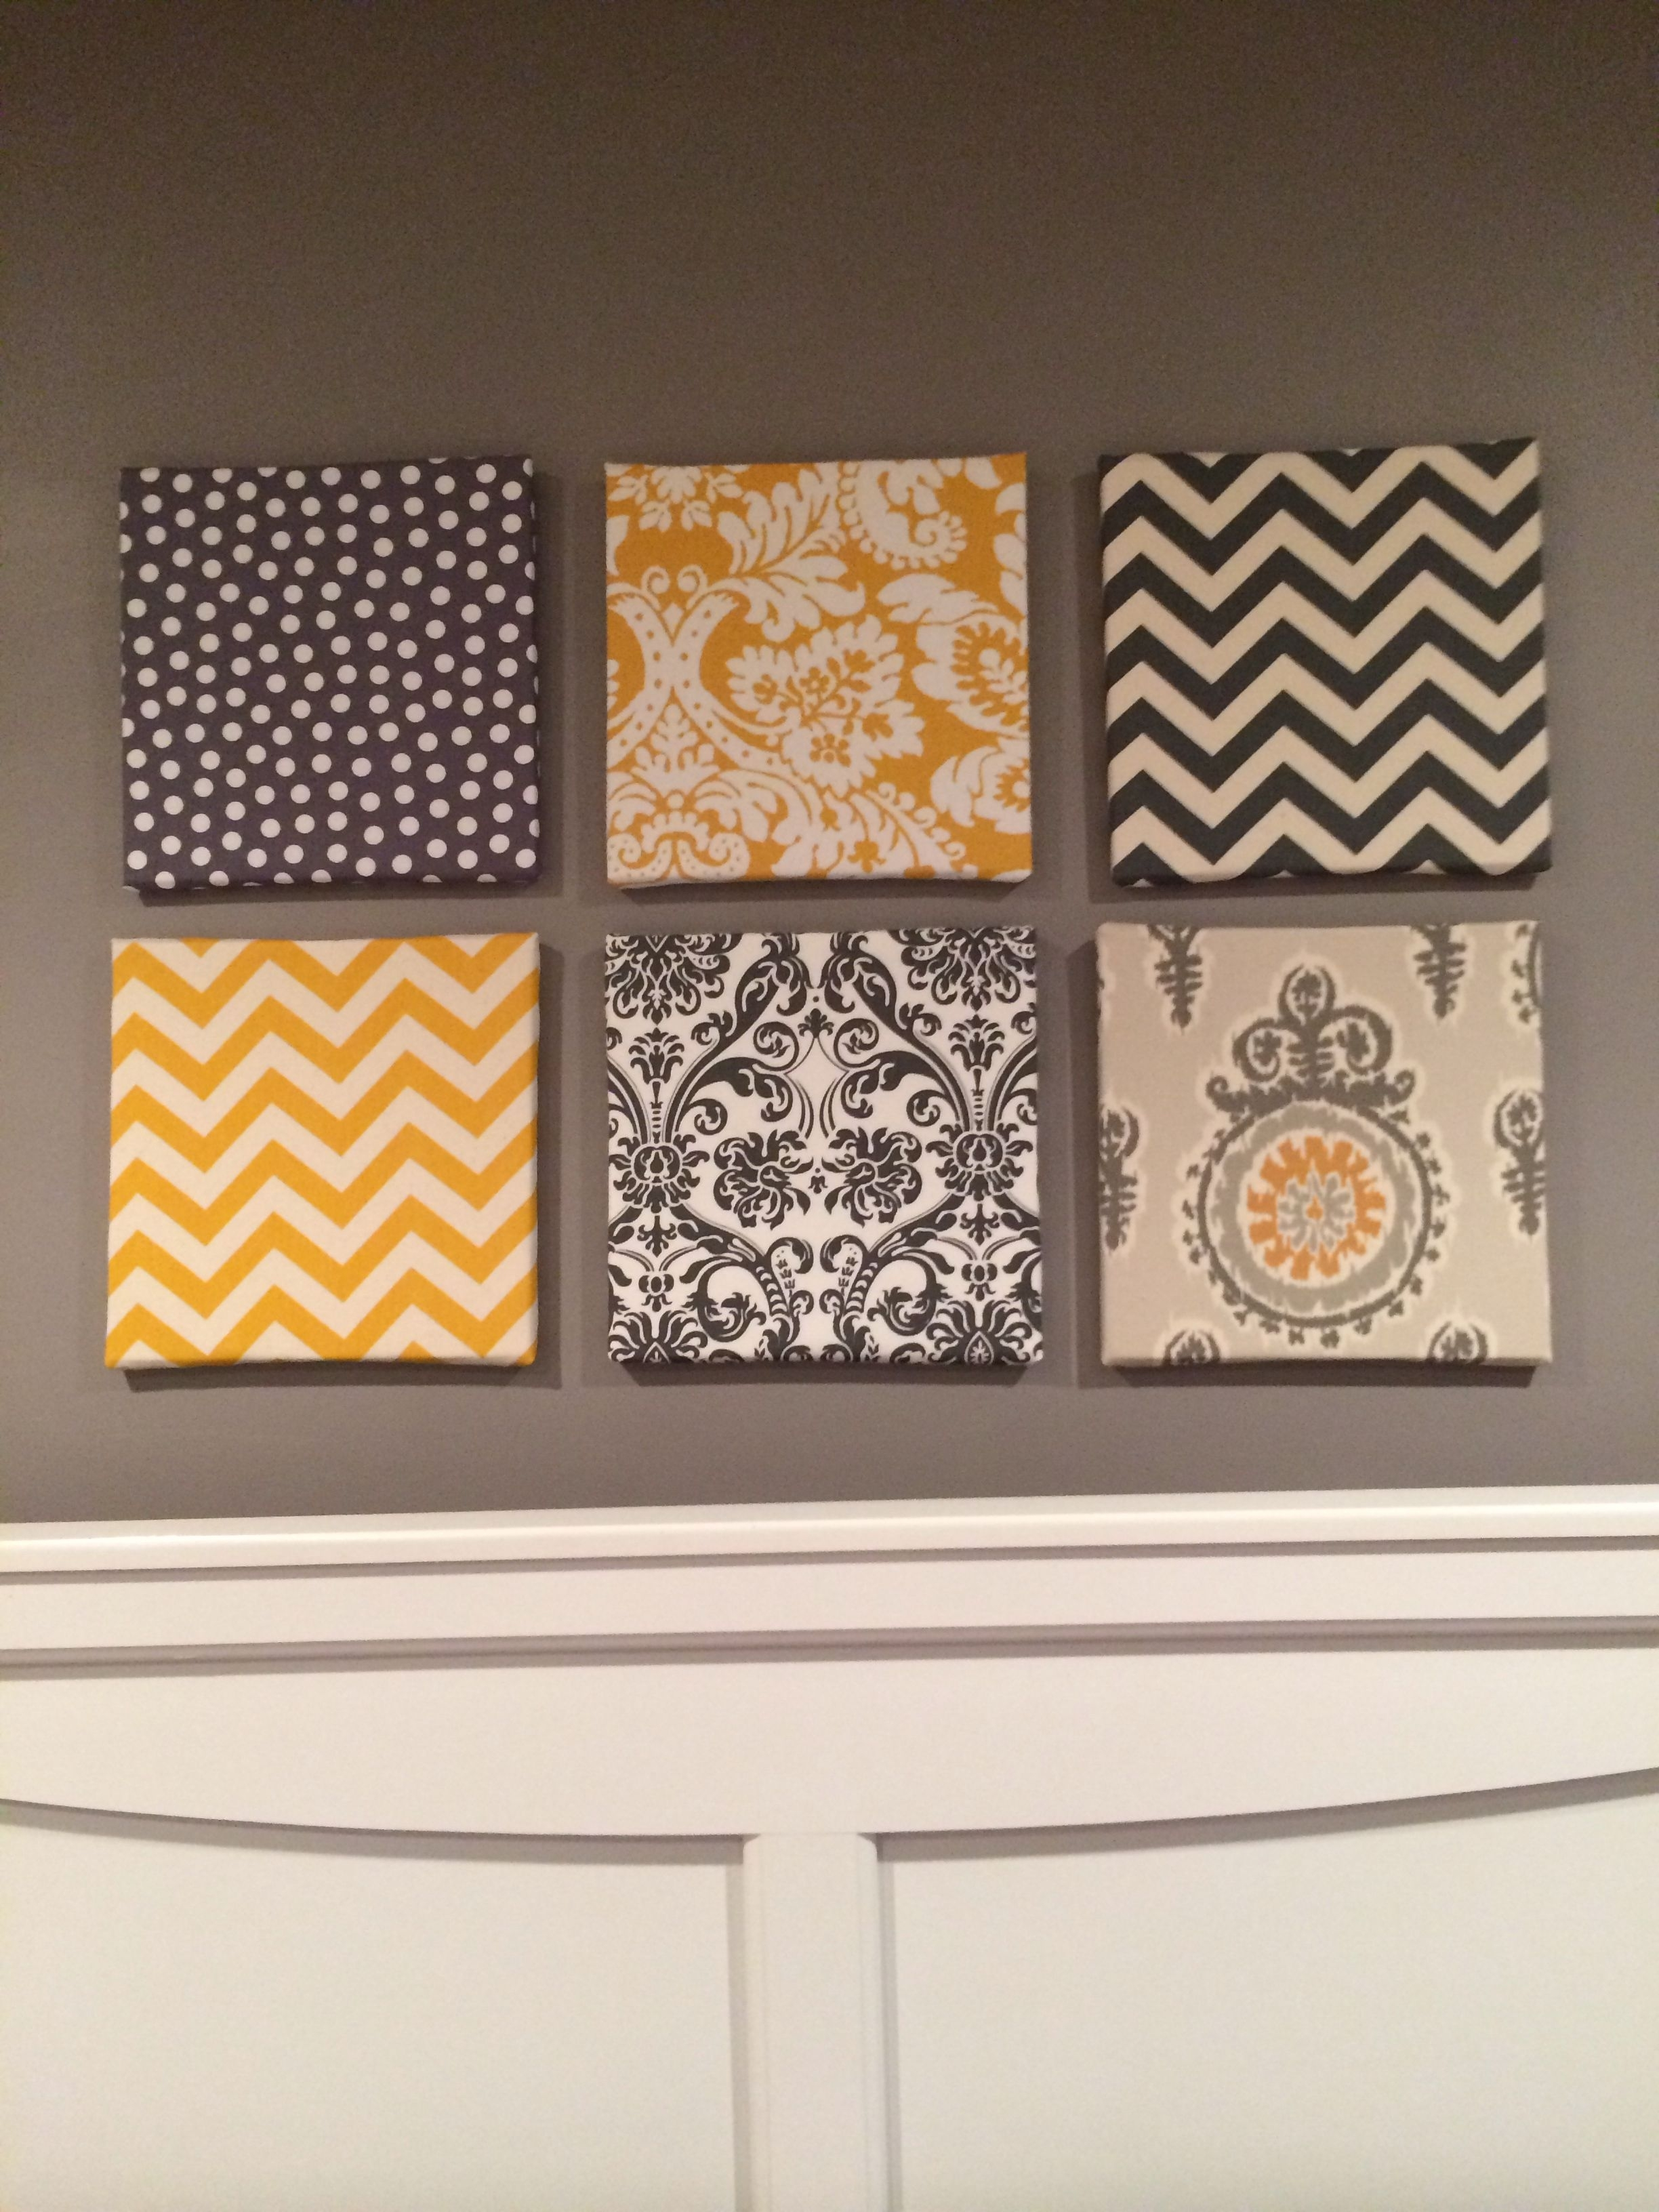 My Fabric Over Canvas Wall Art For My Gray And Yellow Themed Room For Recent Yellow Wall Art (View 12 of 20)